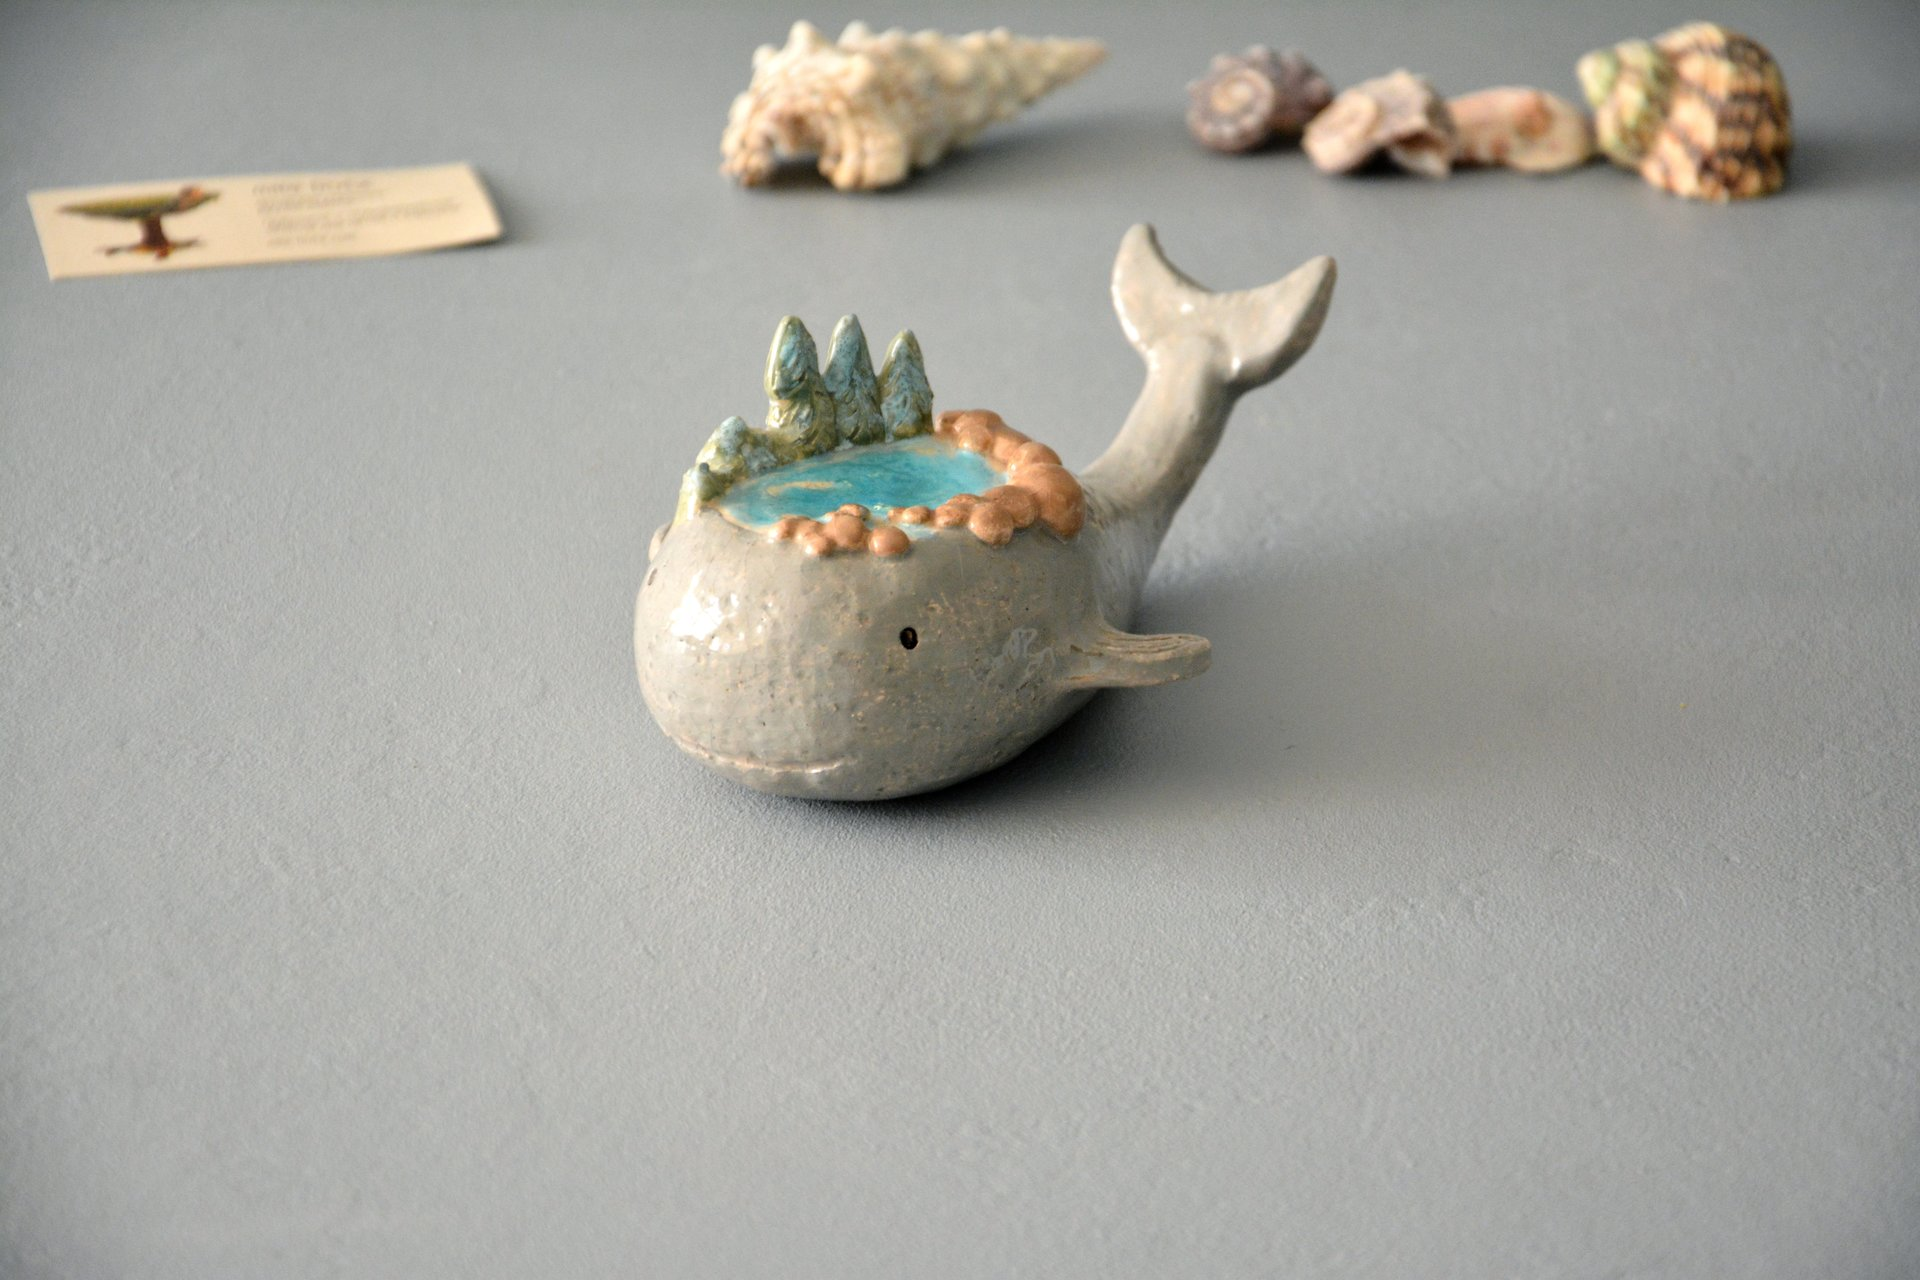 Little whale - Ceramic fishes, height - 5 cm, photo 1 of 5.